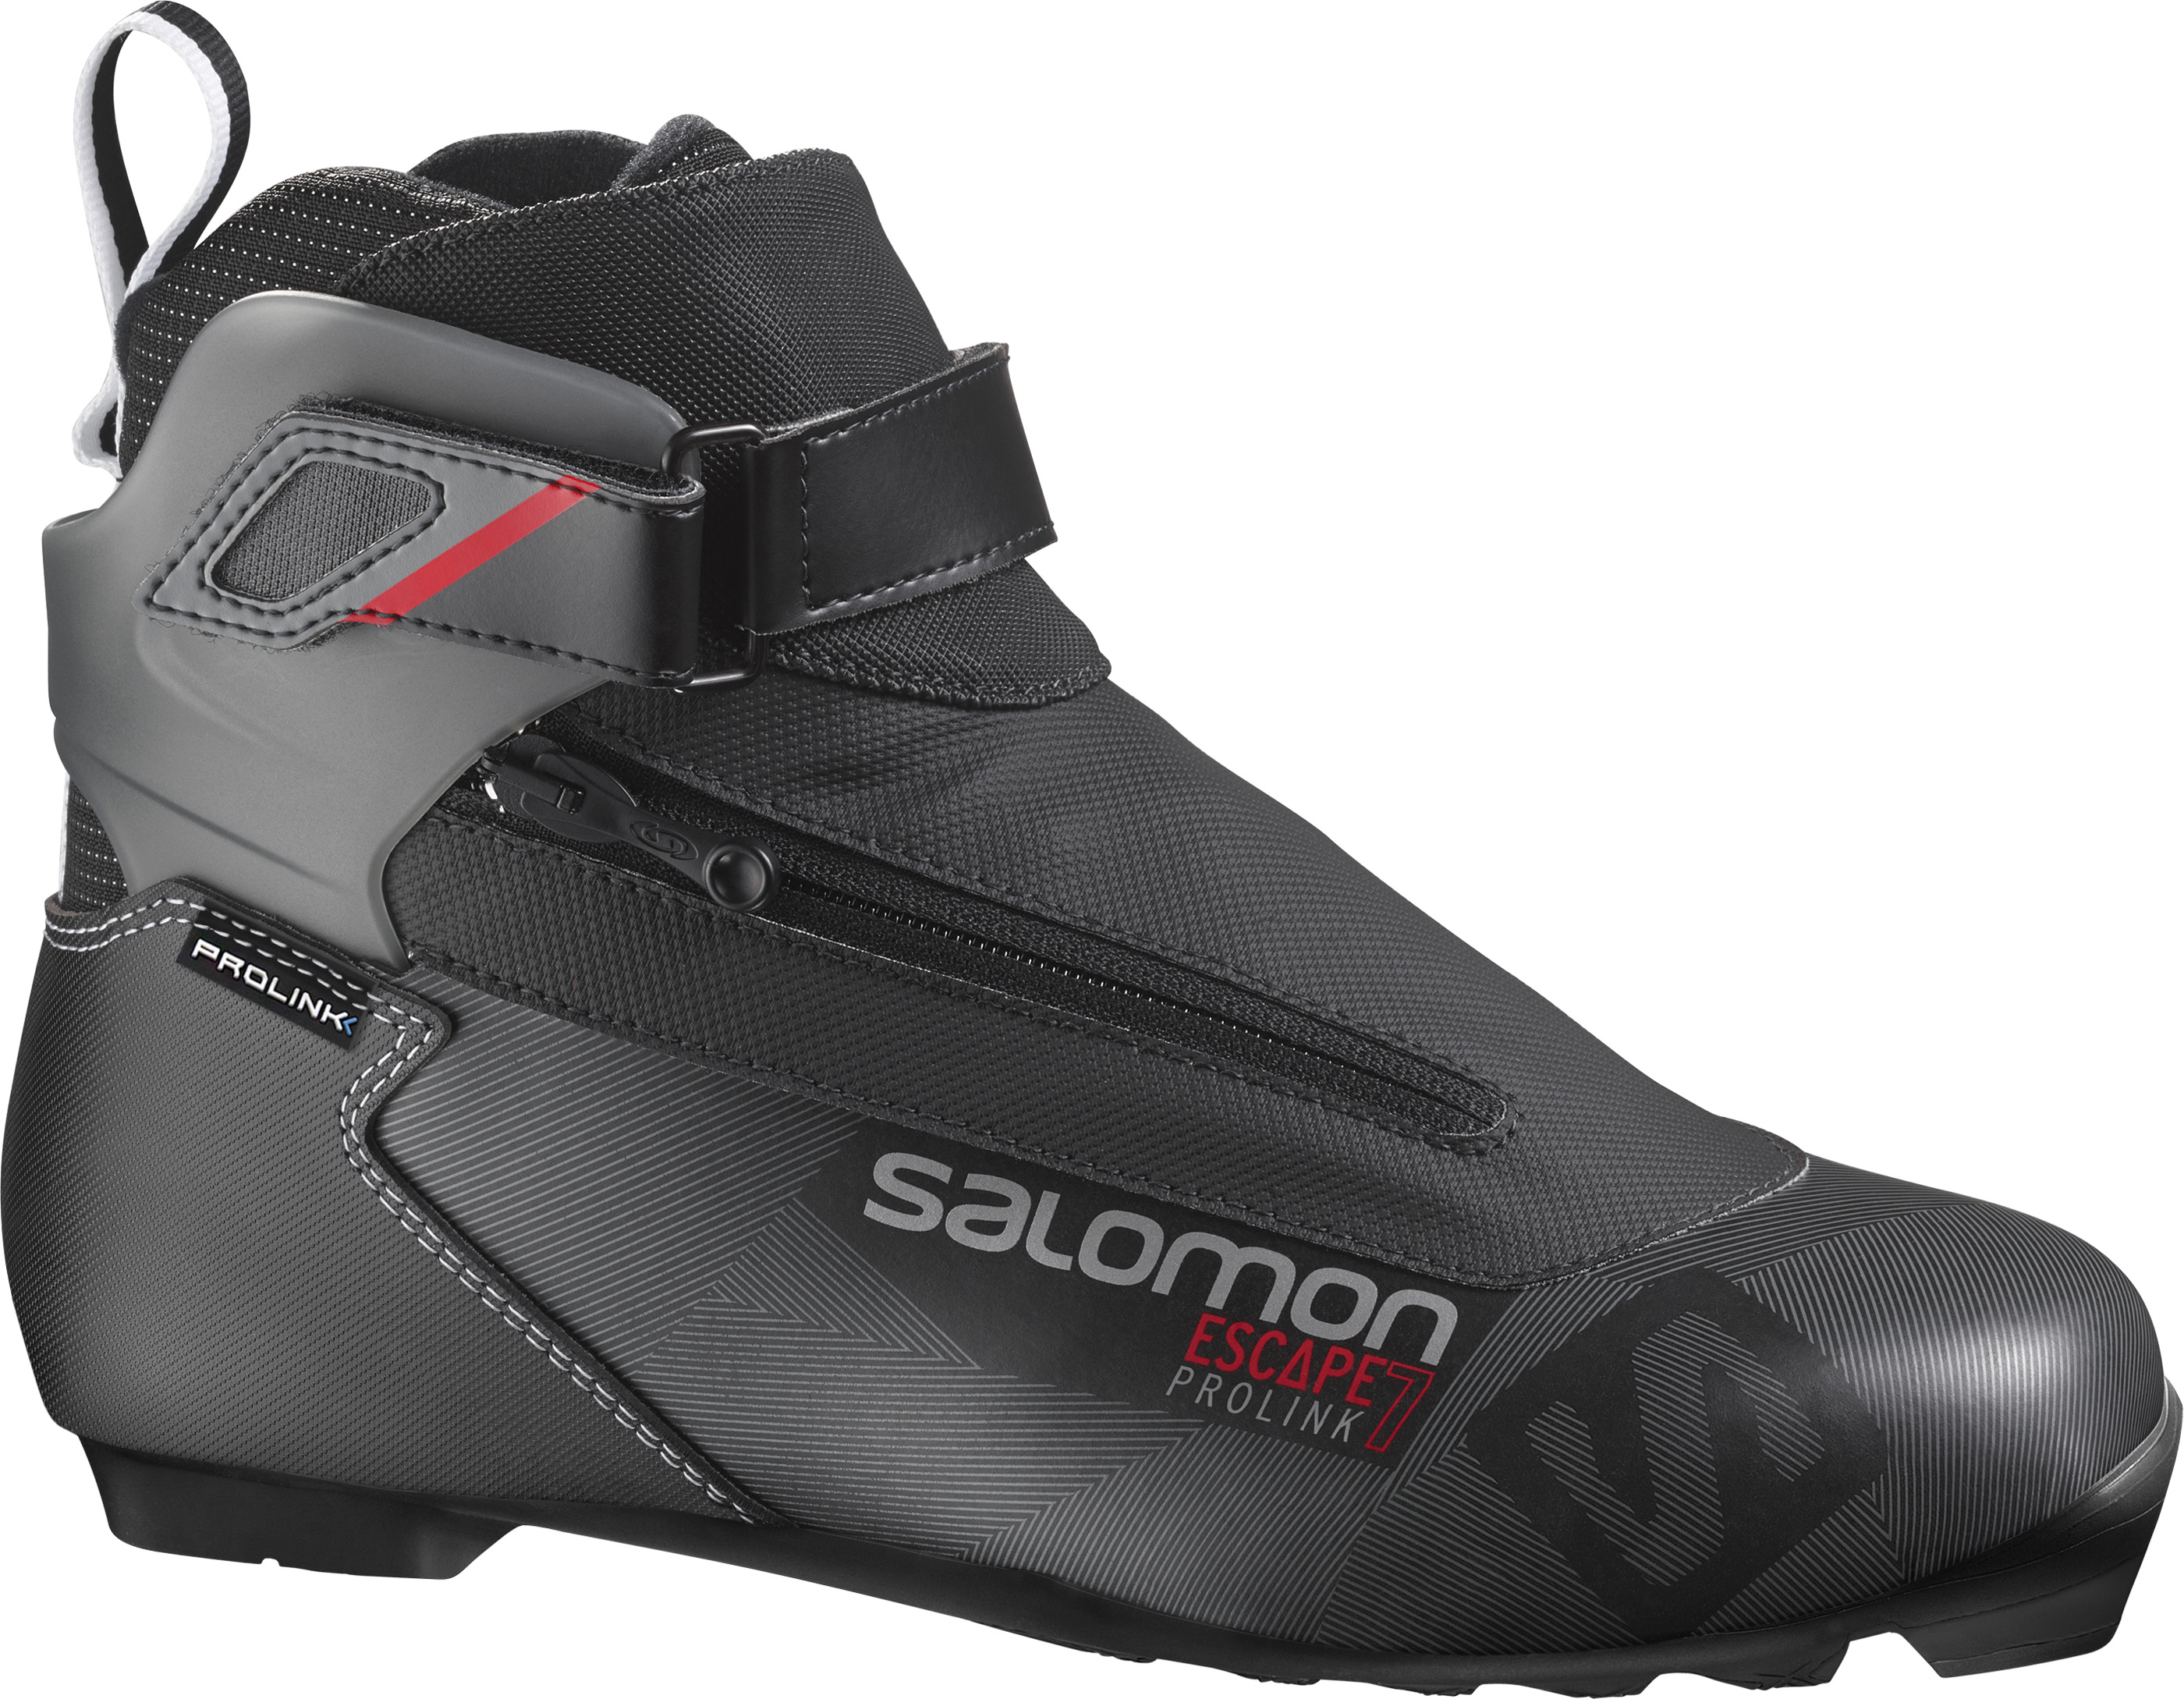 SALOMON ESCAPE 7 PROLINK 18/19